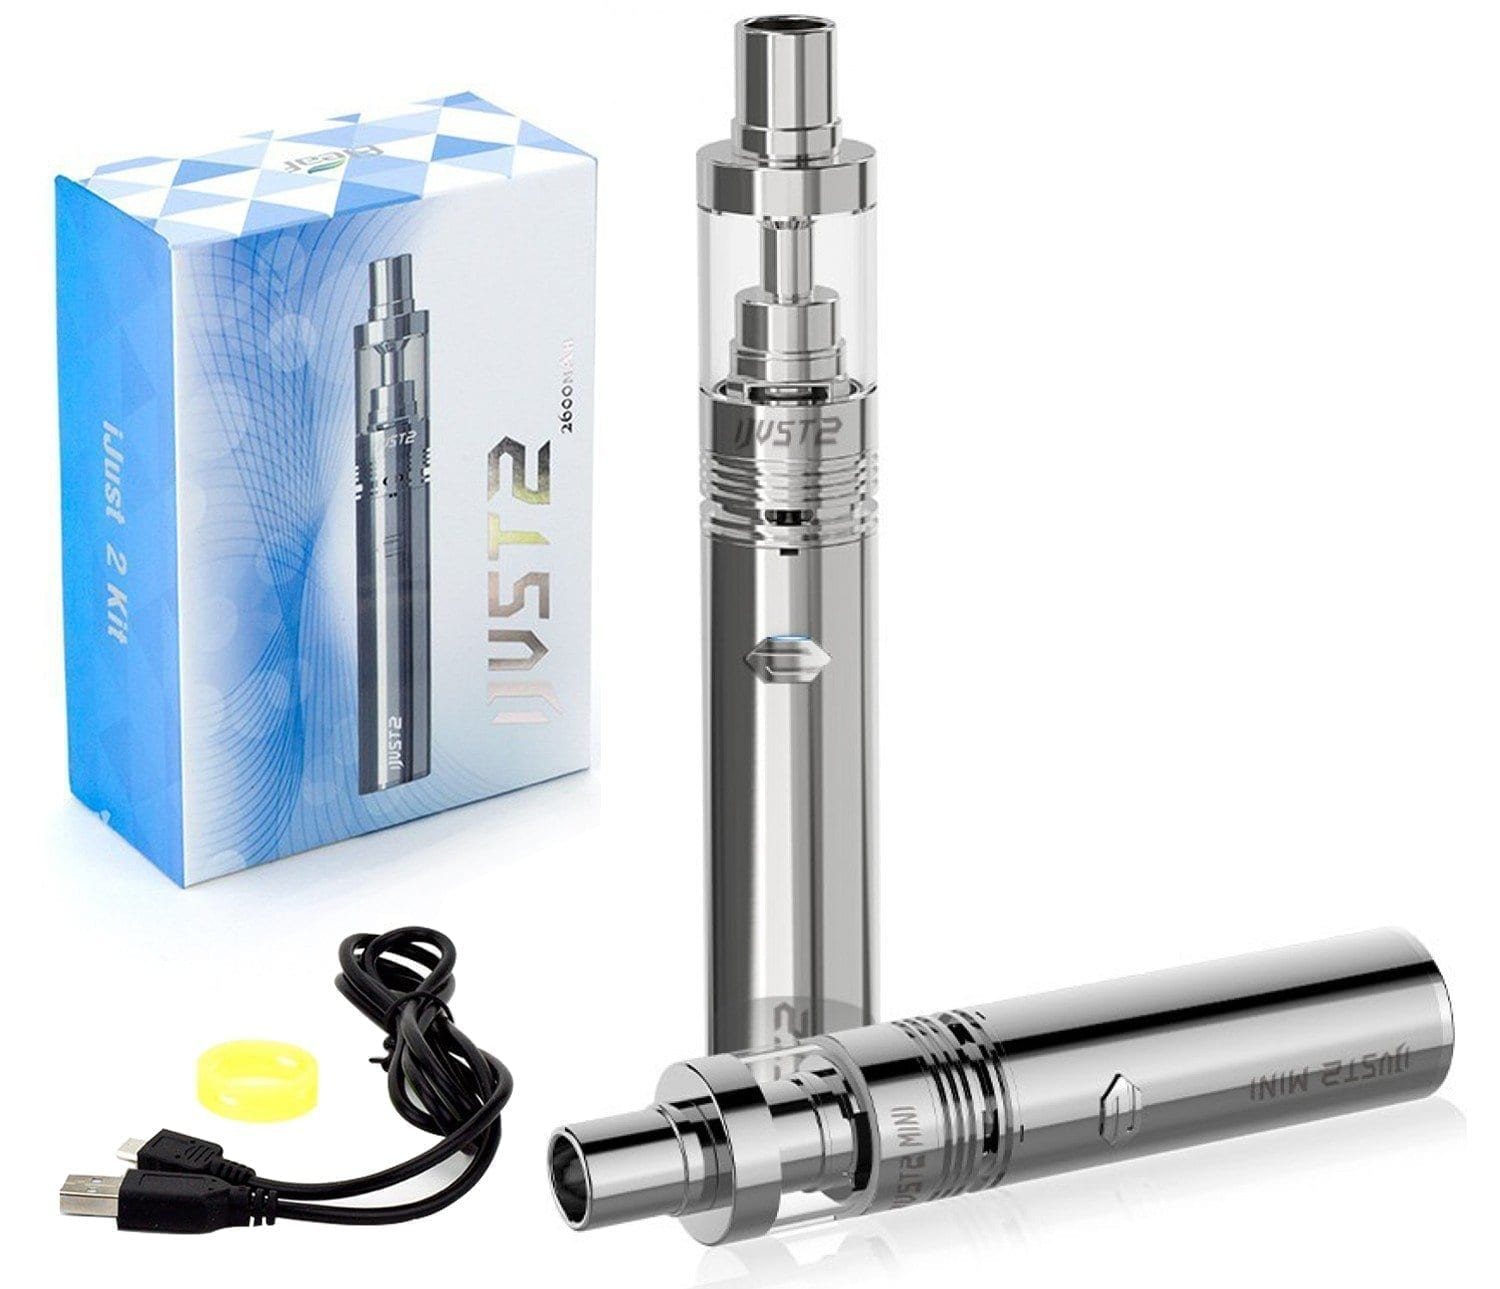 Eleaf iJust 2 Starter Kit 2600mah Evapour 5.5ml Tank